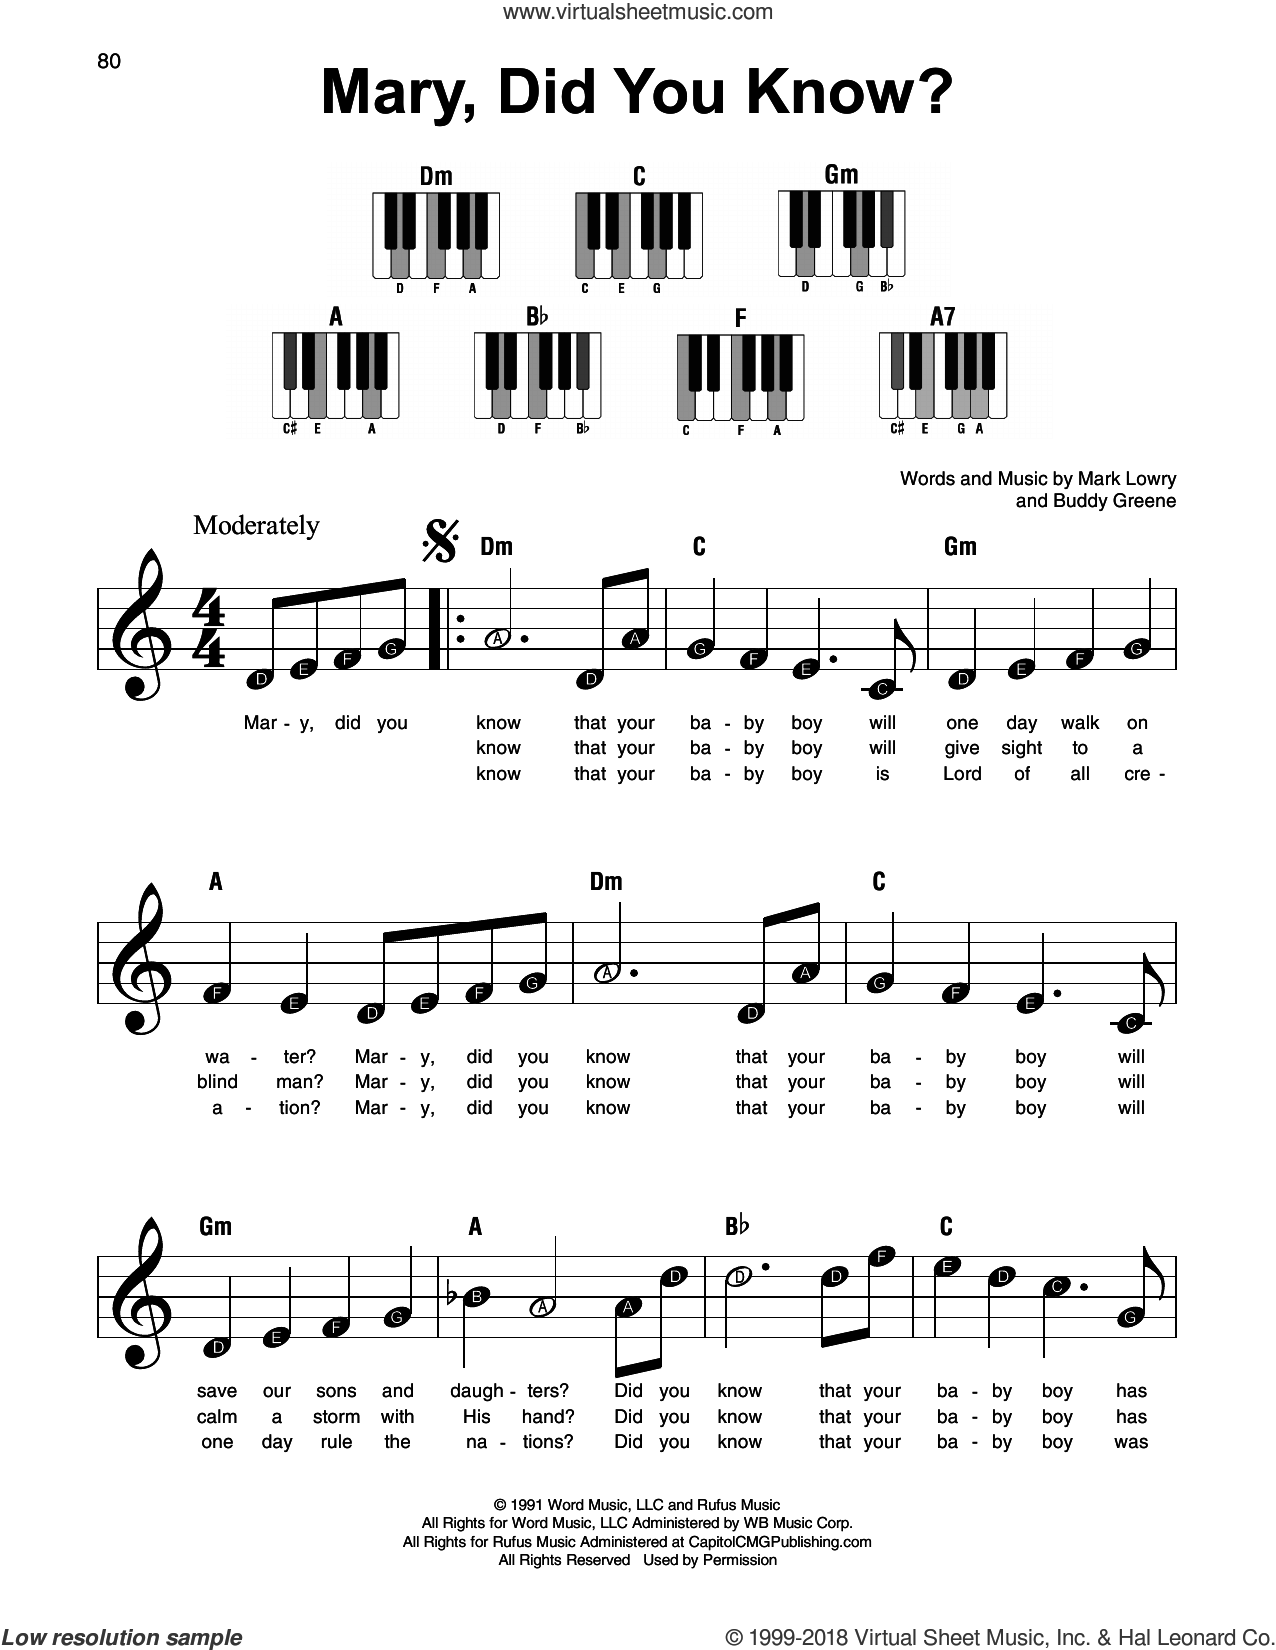 Greene - Mary, Did You Know? sheet music for piano solo PDF in 2020 | Easy piano sheet music ...